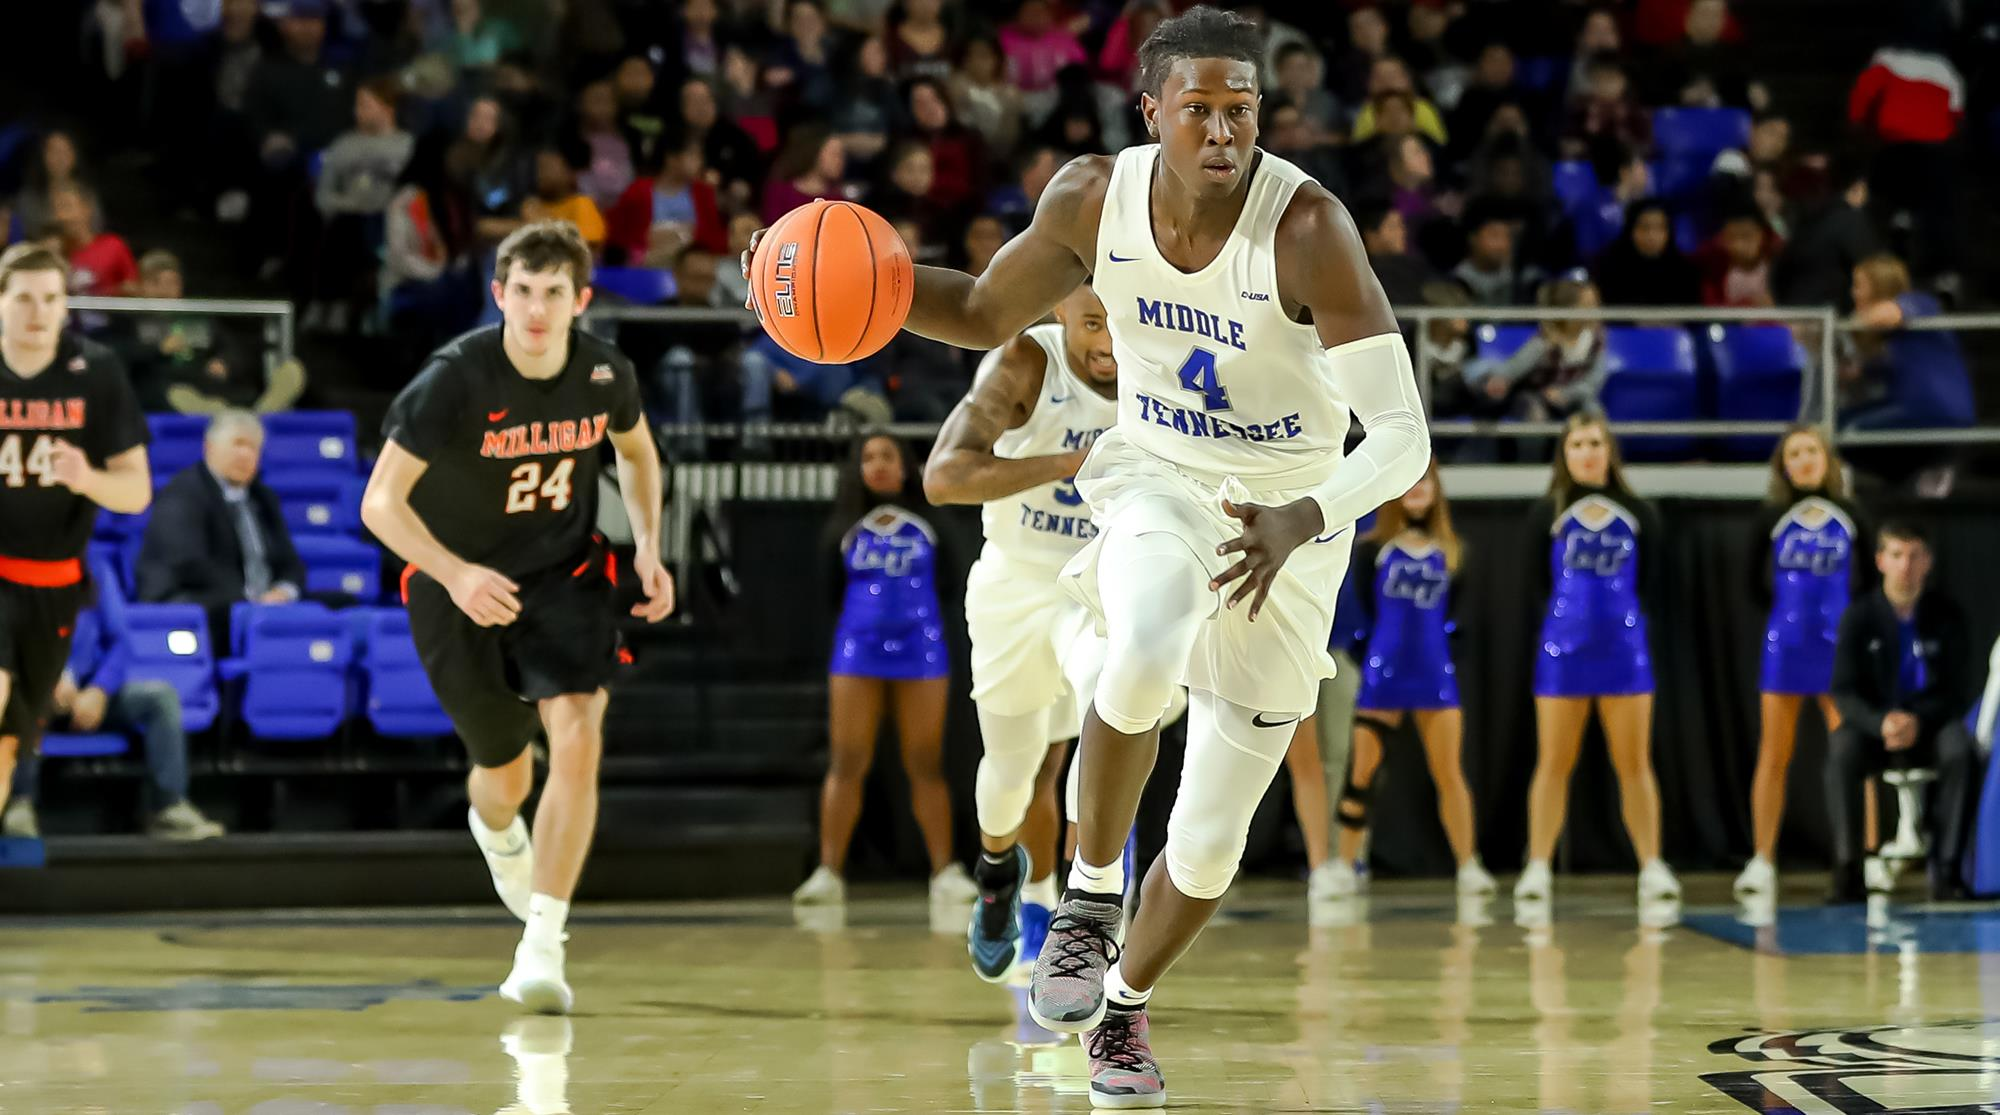 Tookie S Middle Tennessee Chapter Coming To A Close Middle Tennessee State University Athletics